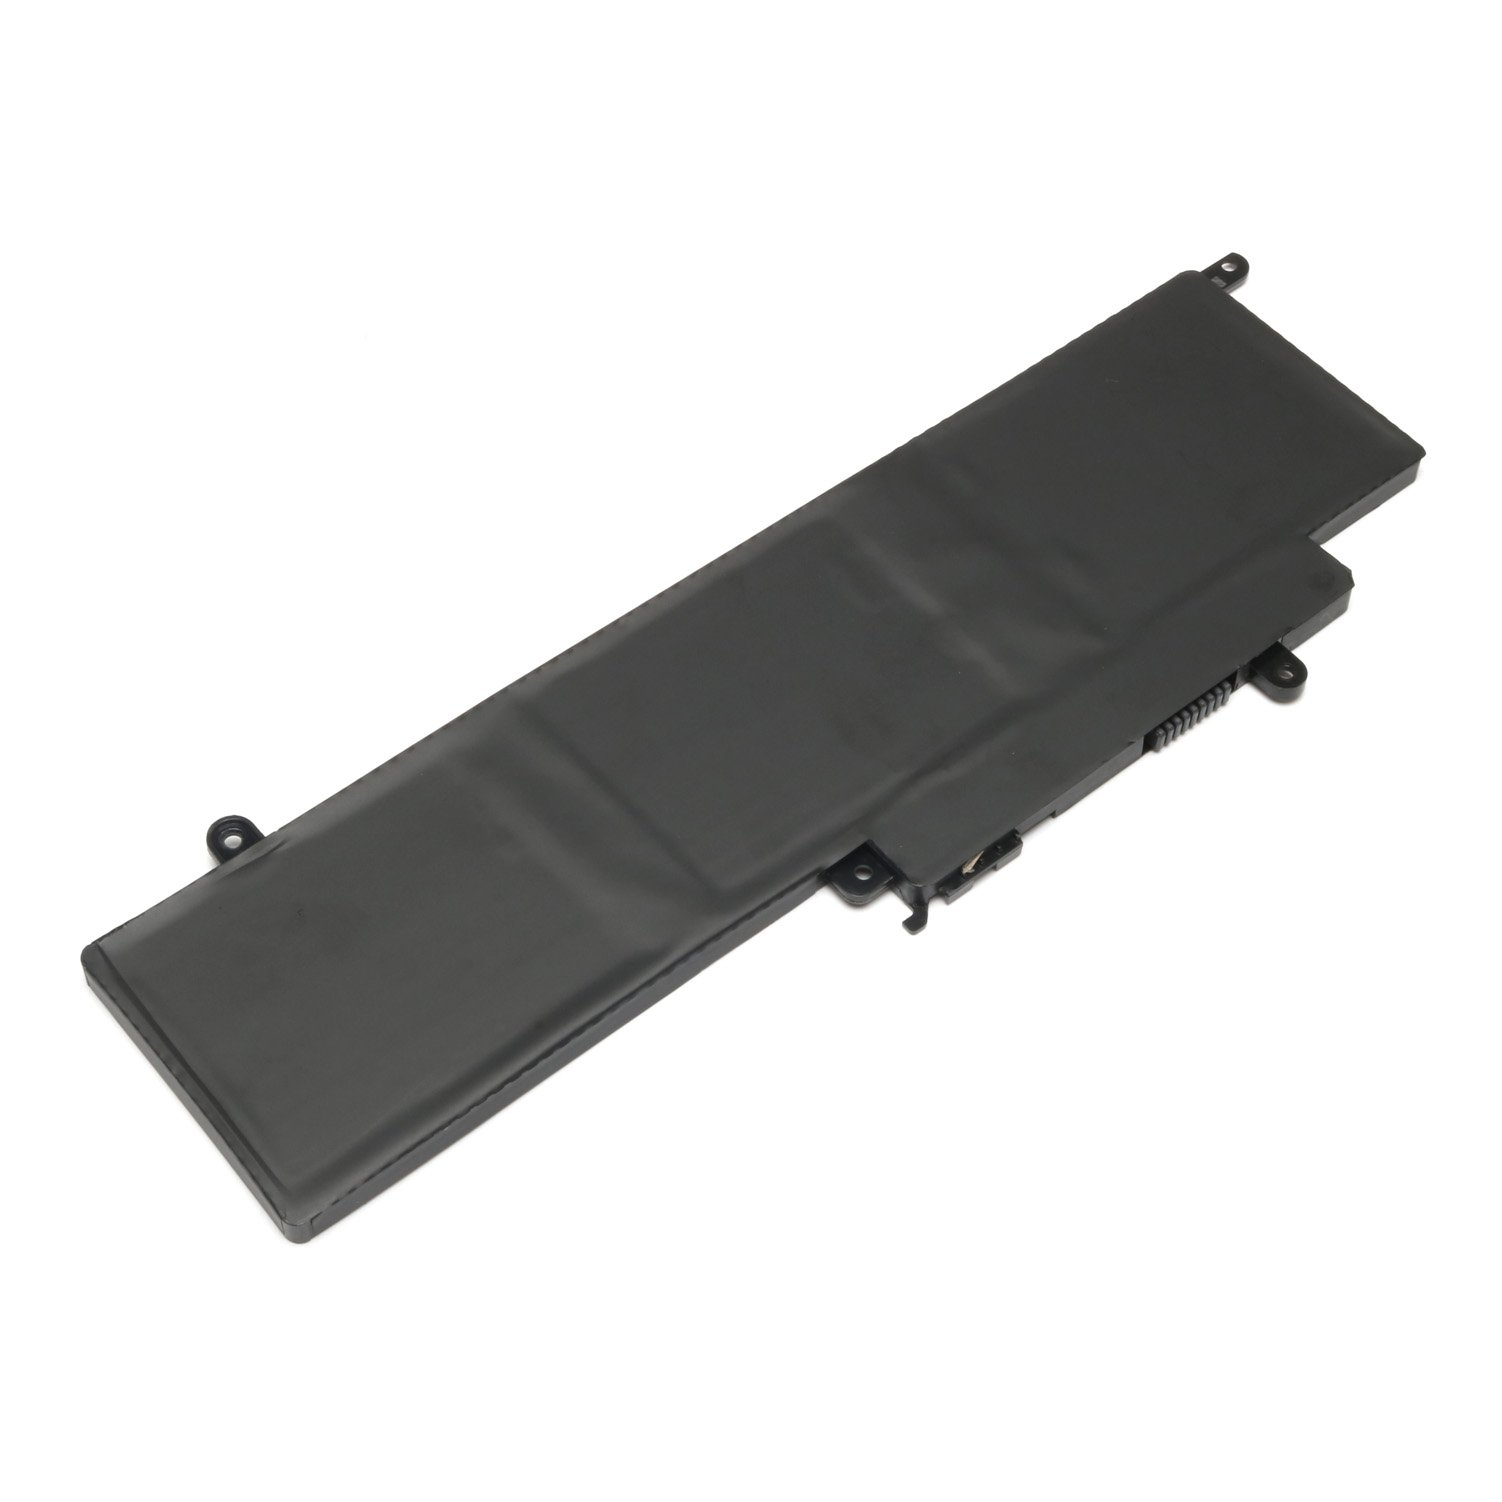 GK5KY New Laptop Battery for Dell Inspiron 11 3000 3147 3148 3152 13 7000 7353 7352 7347 7348 7359 7558 7568, Compatible P/N 04K8YH 92NCT 092NCT 4K8YH P20T Notebook PC by BULL-TECH (Image #7)